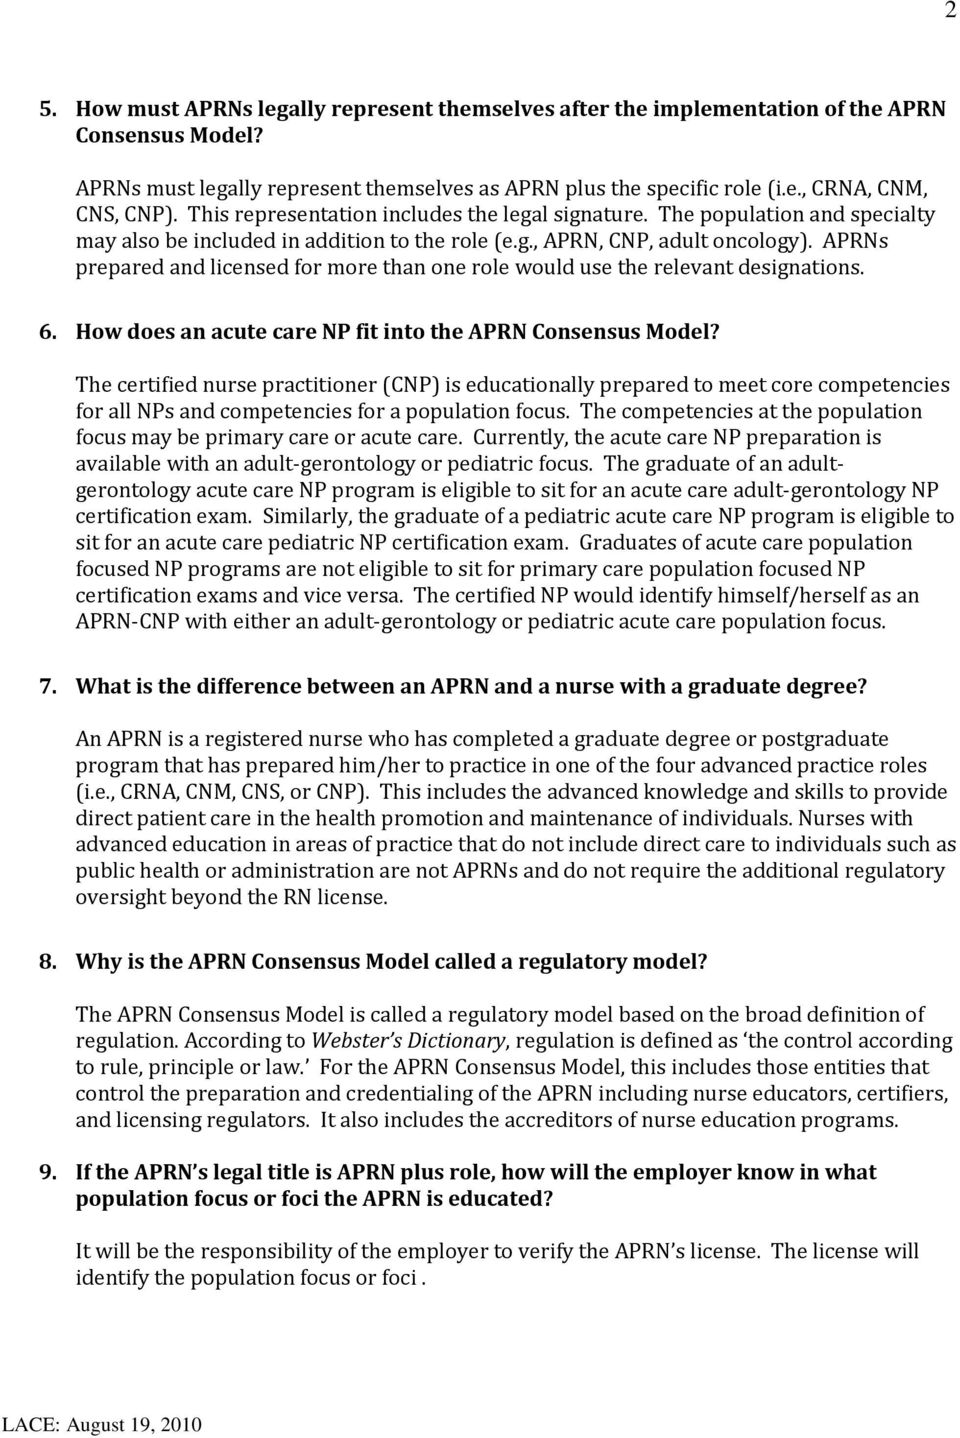 APRNs prepared and licensed for more than one role would use the relevant designations. 6. How does an acute care NP fit into the APRN Consensus Model?